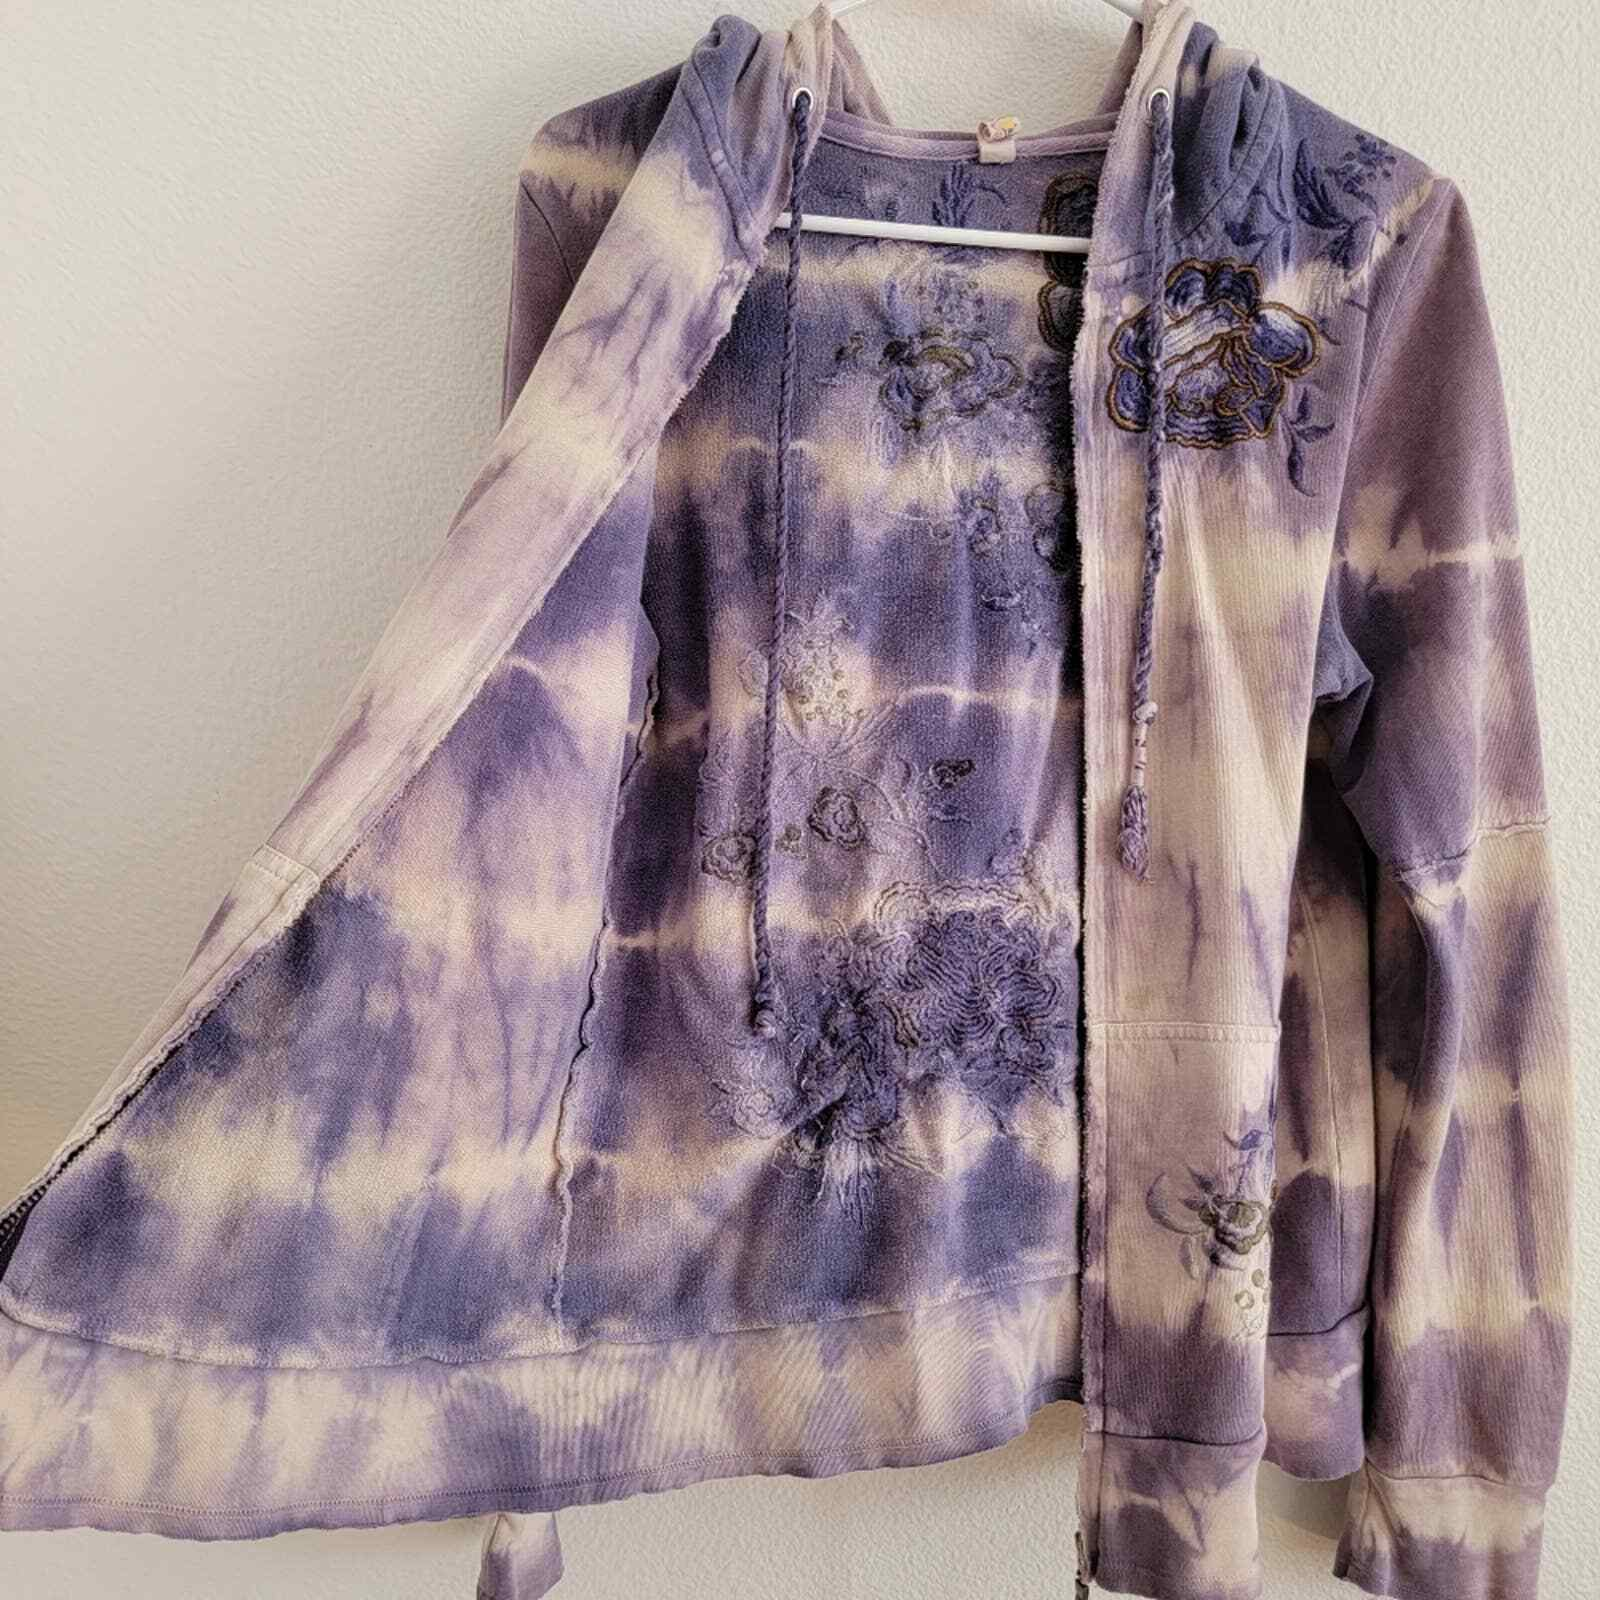 Penelope Violet Tie-Dye Embroidered Zip Up Sweater - image 11